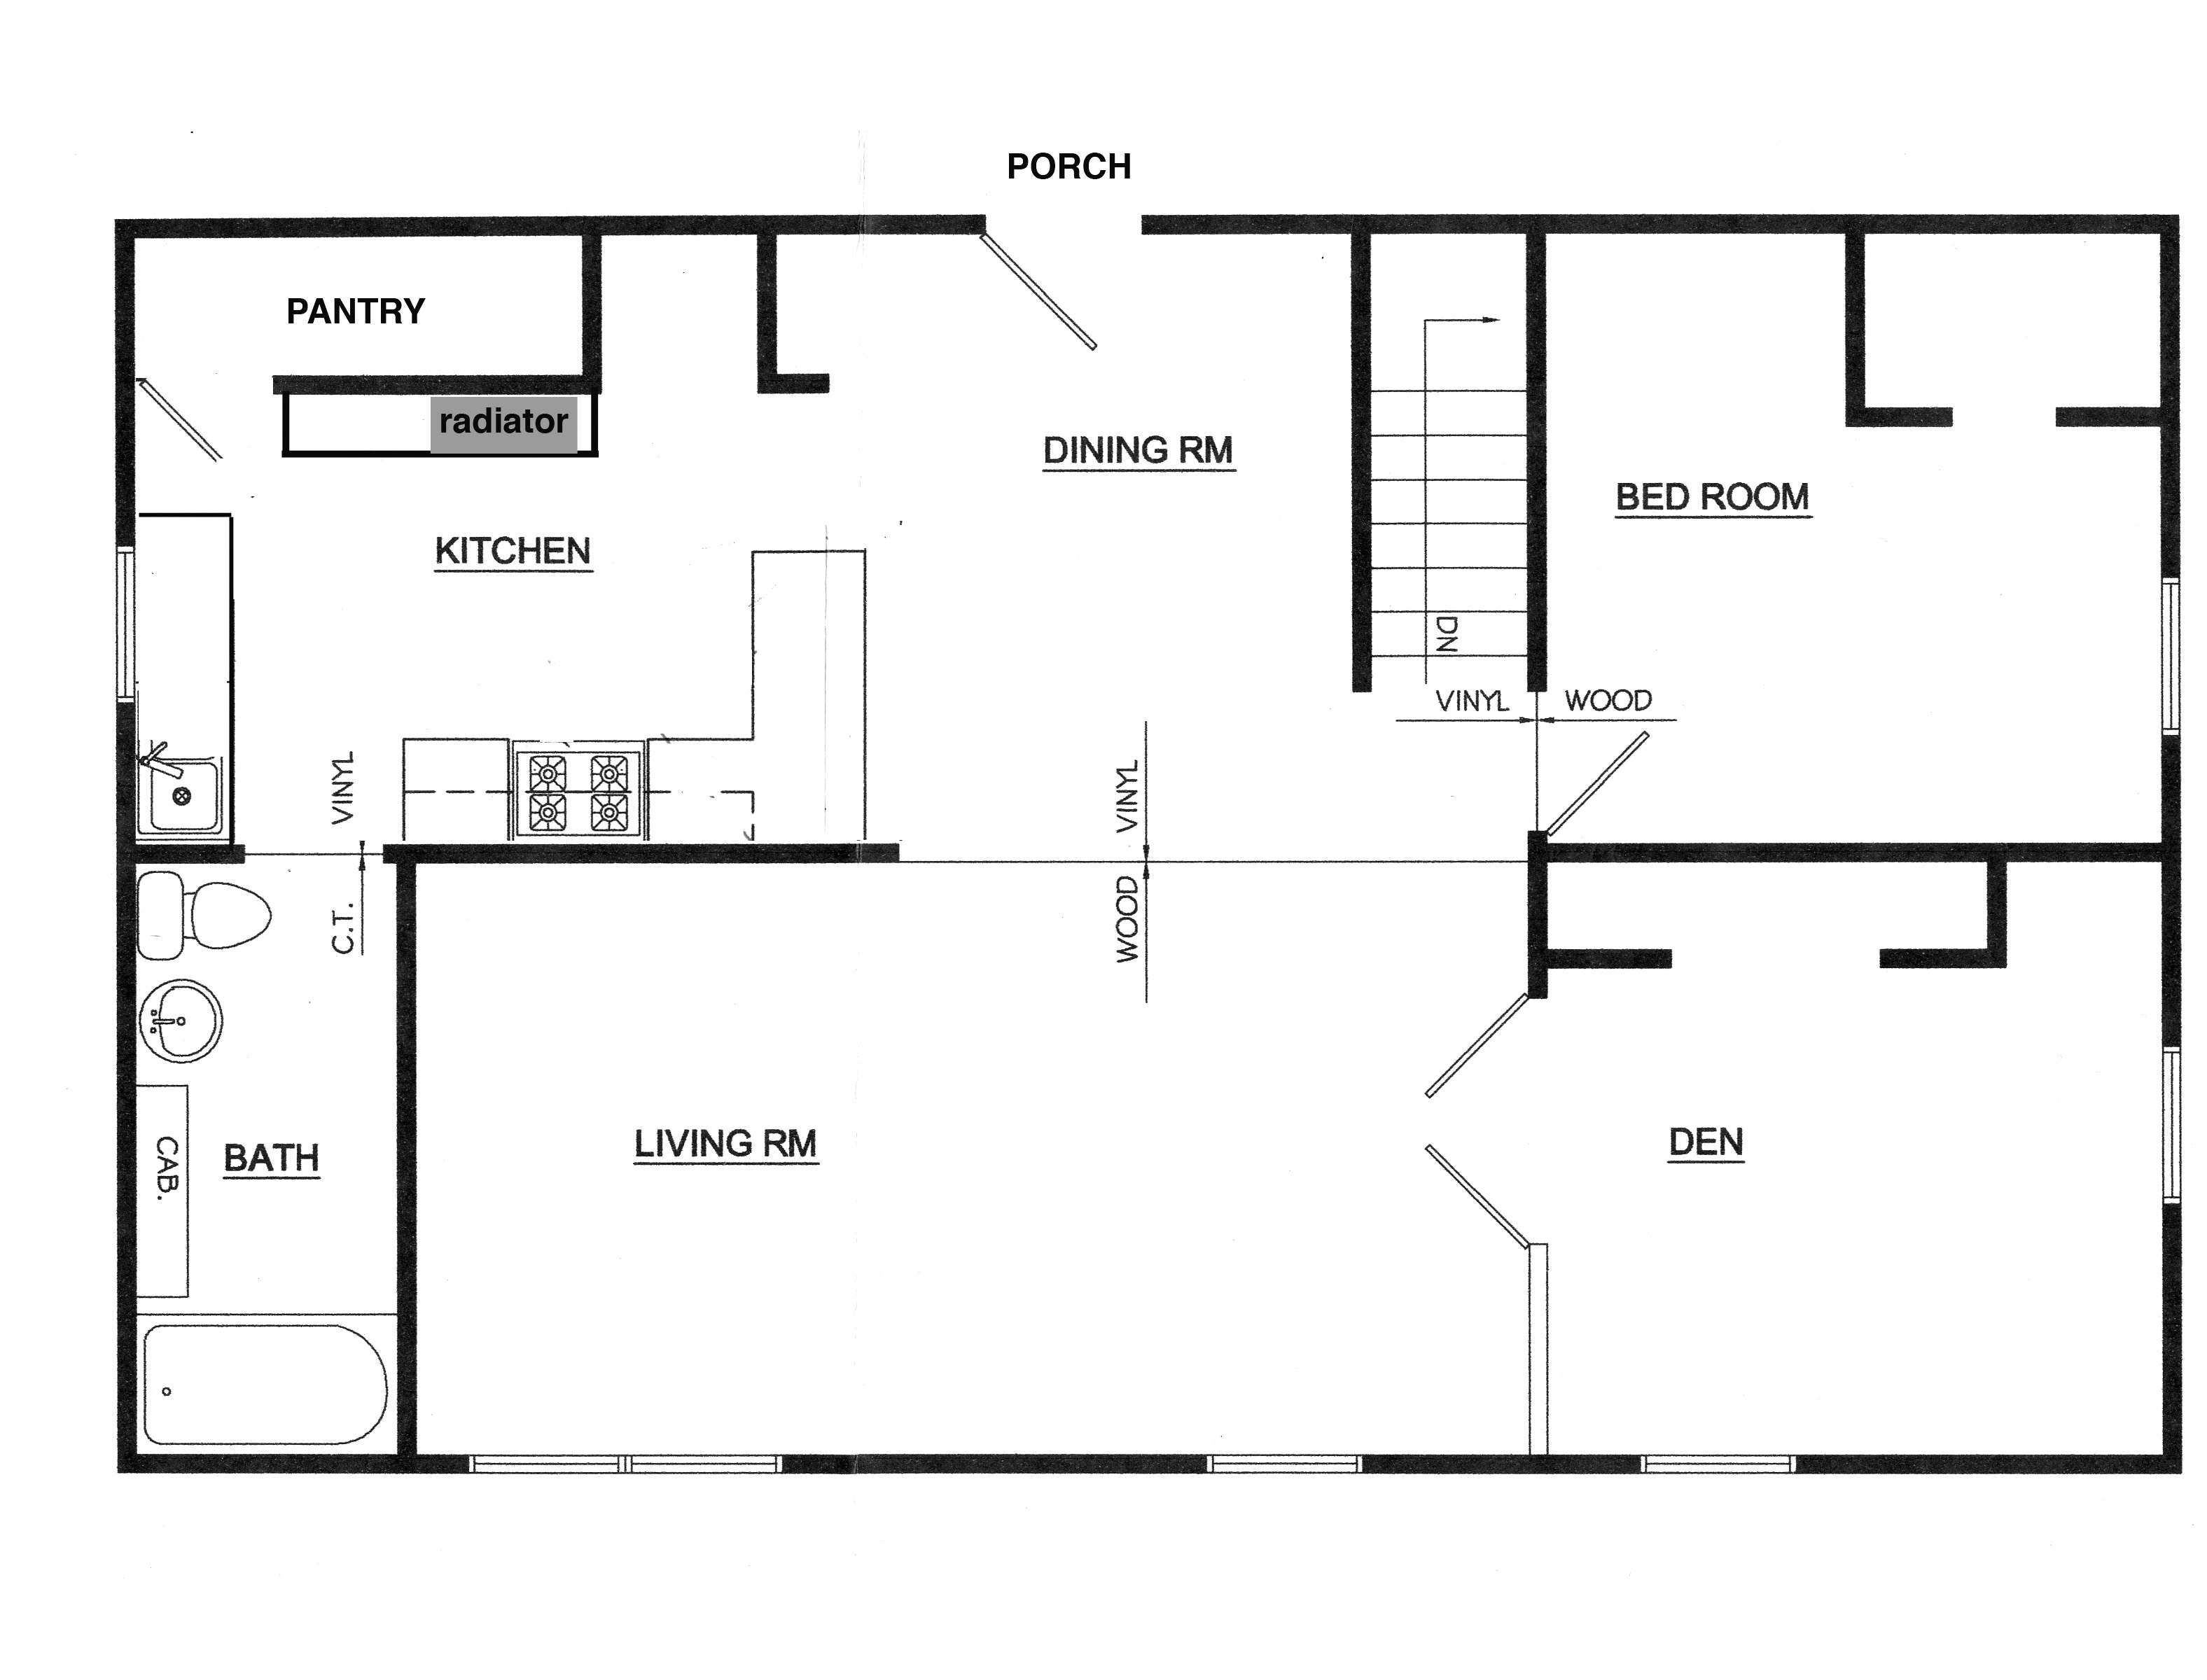 Floor Plans This Odd House: how to make a floor plan